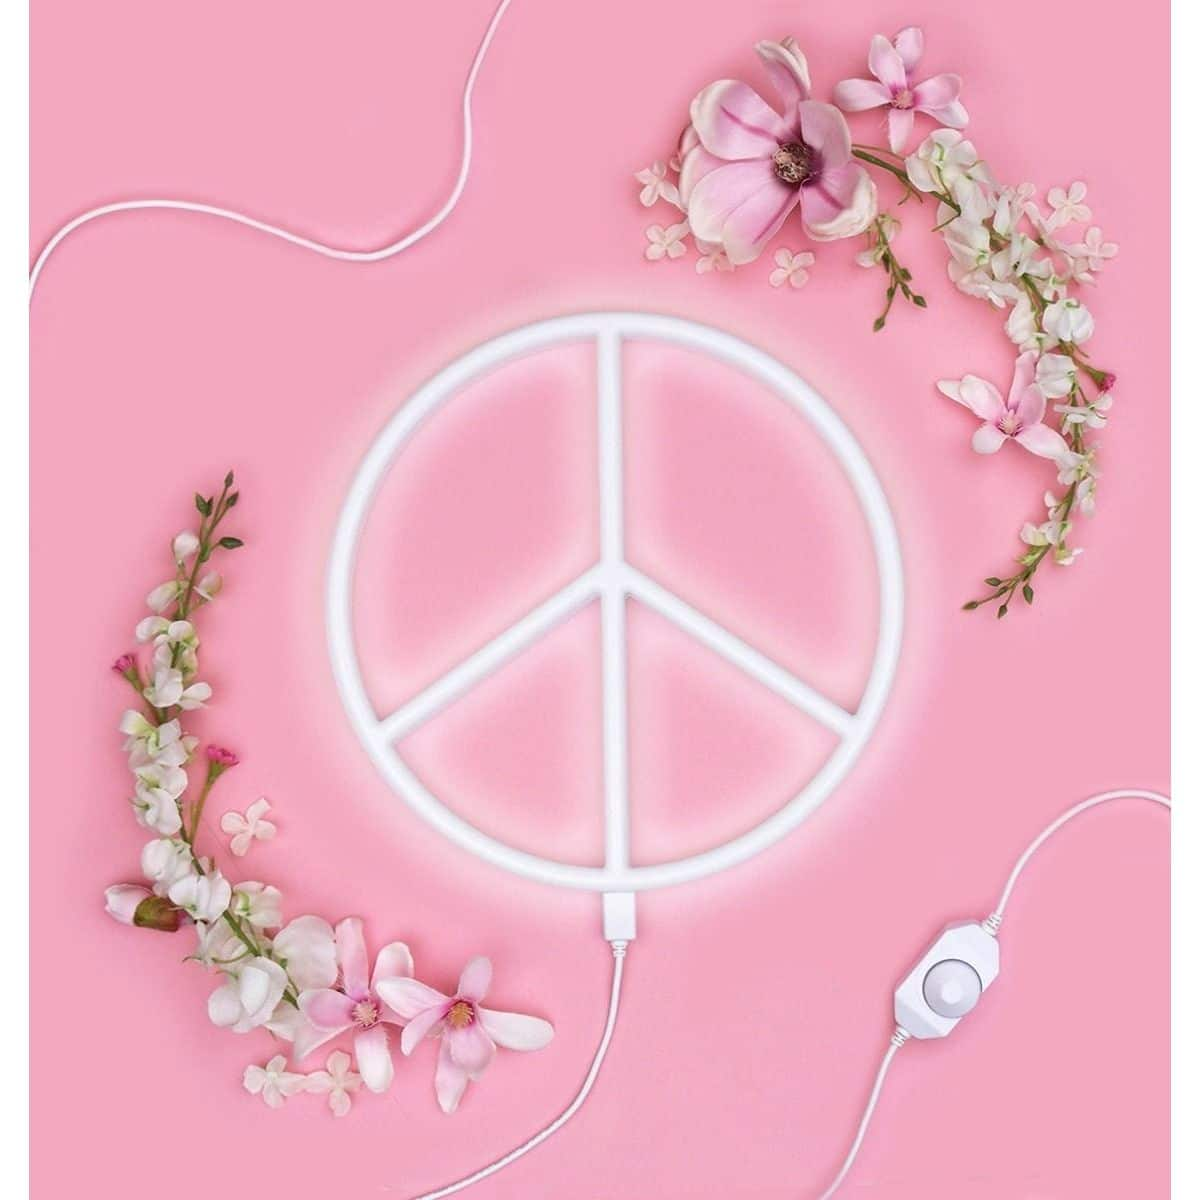 Nepewh Lr 5 Neon Style Light Peace White 3